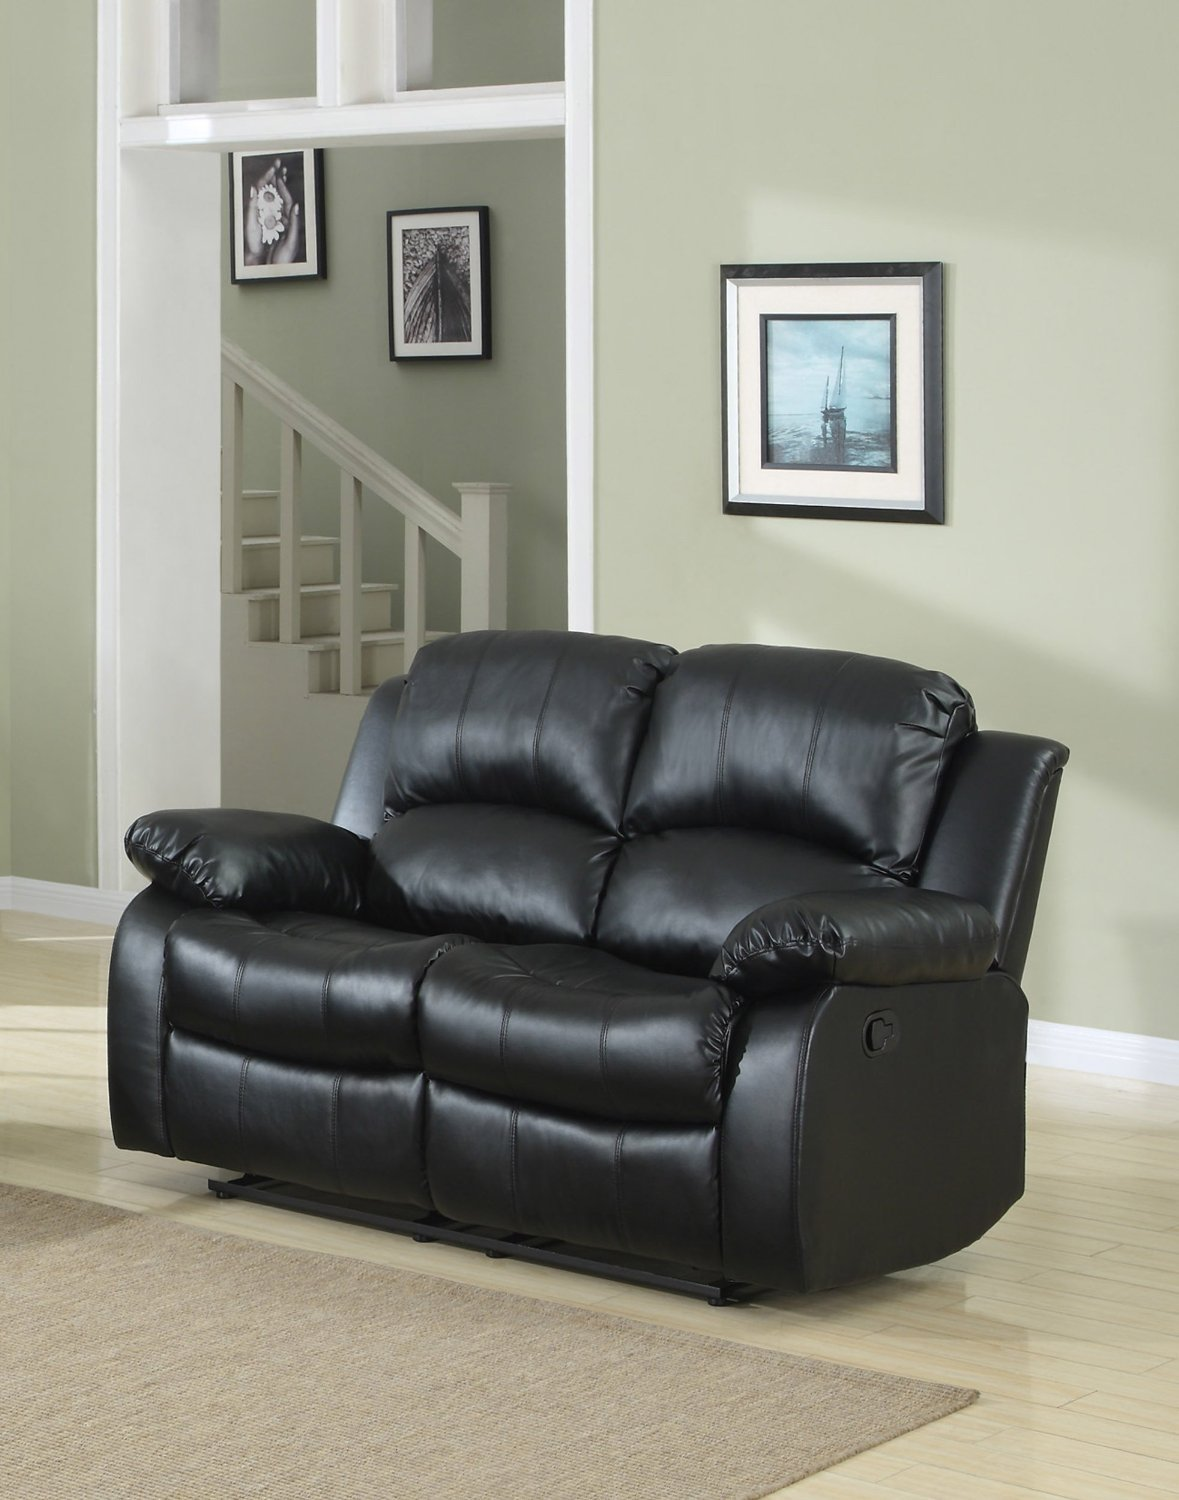 amazoncom classic double reclining loveseat bonded leather living room recliner black kitchen u0026 dining